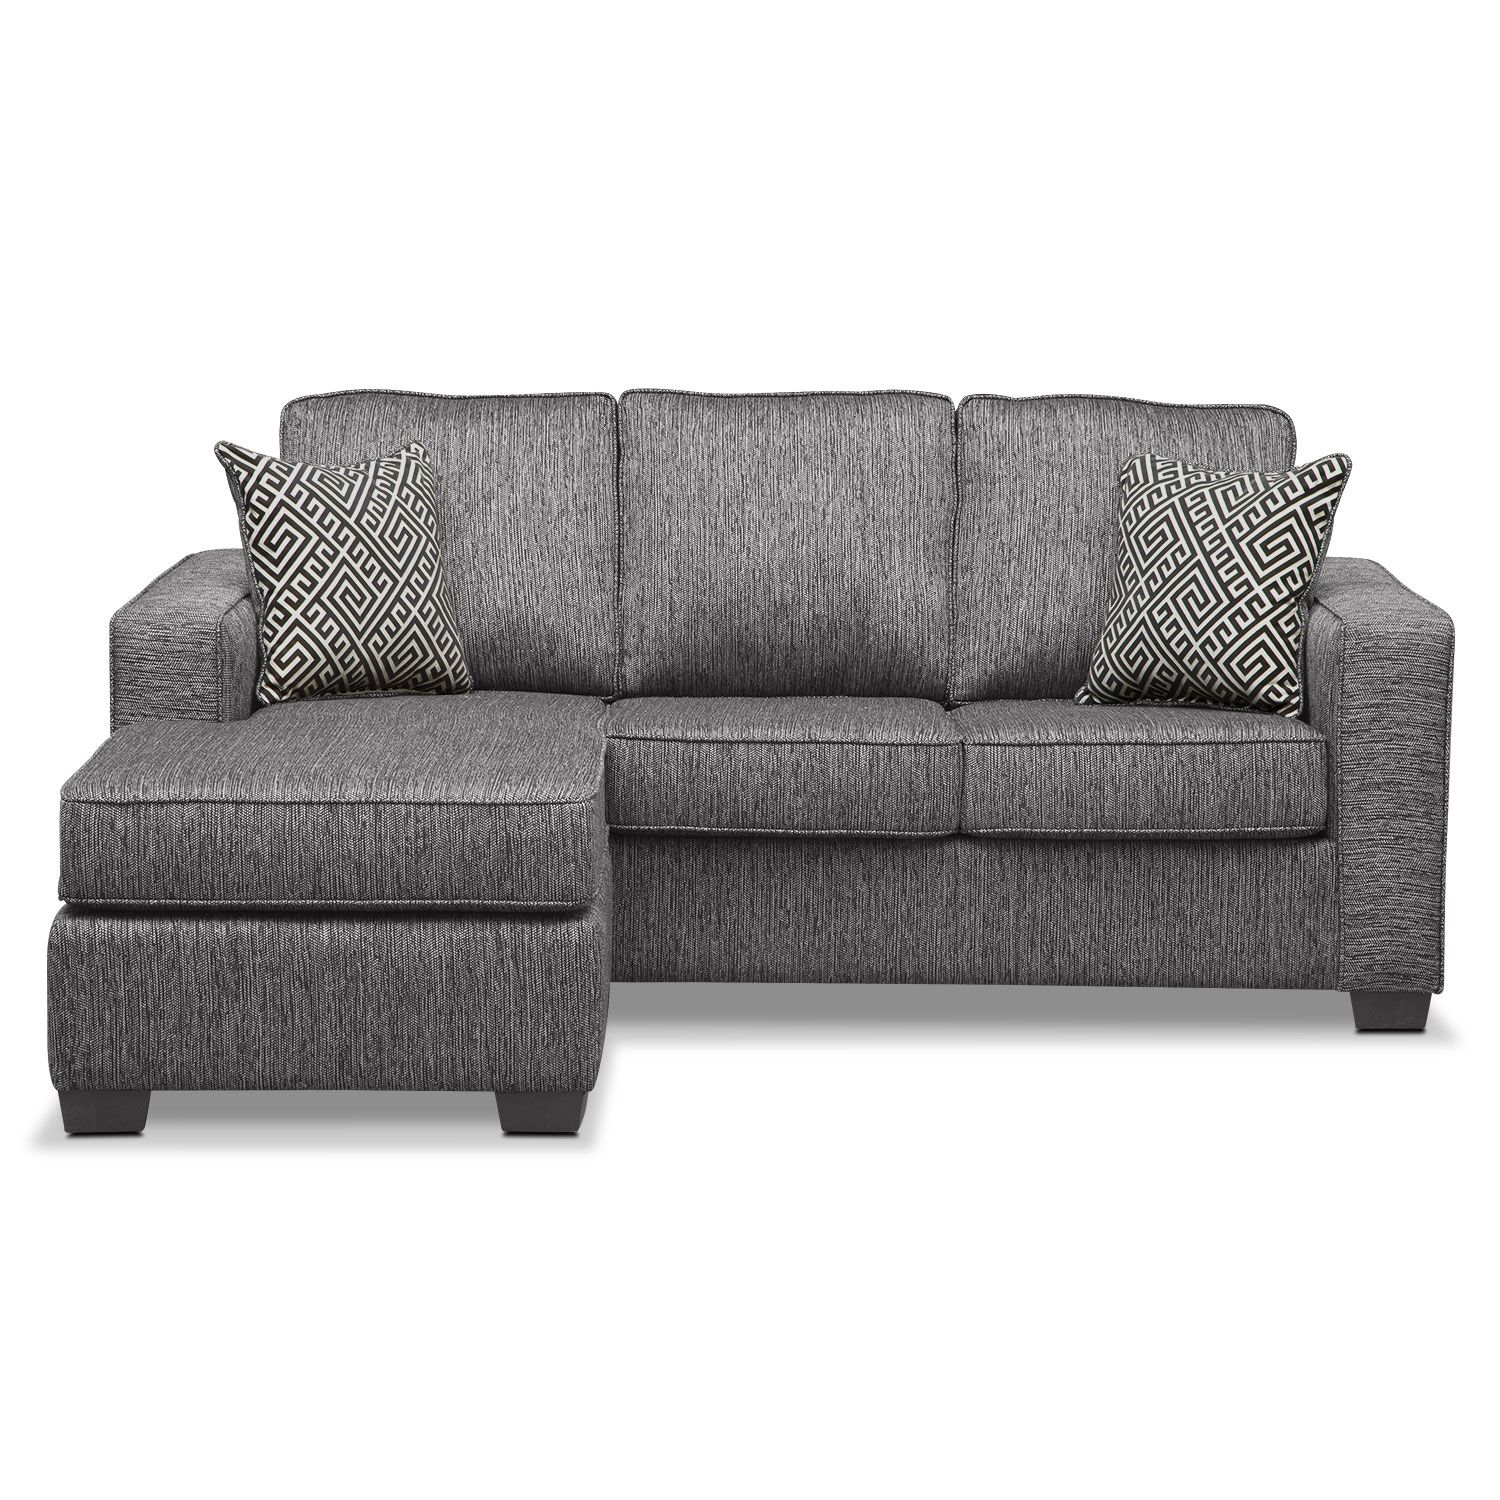 Sterling Charcoal Queen Memory Foam Sleeper Sofa W Chaise Value